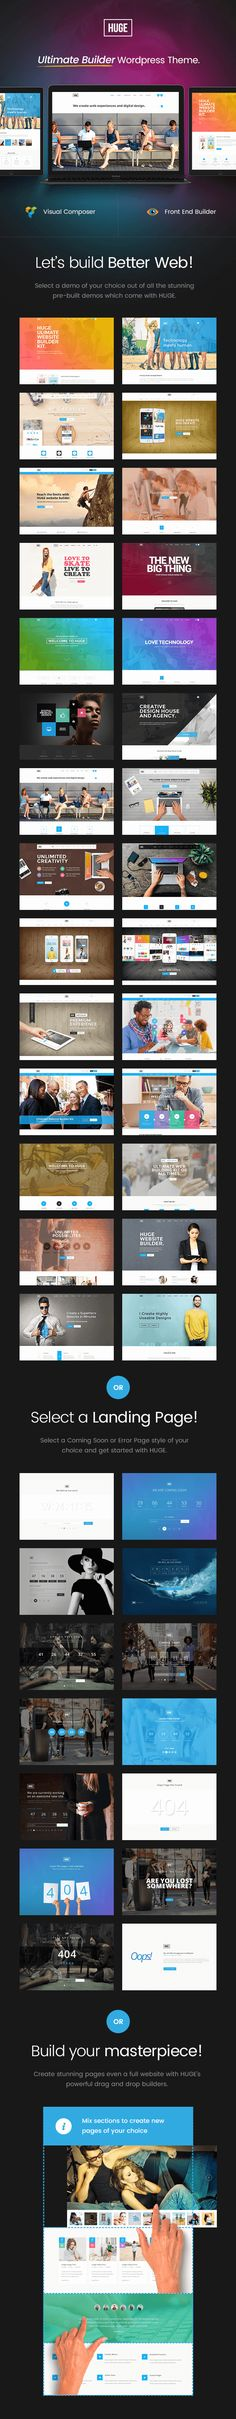 HUGE Ultimate Builder WordPressTheme - Download http://themeforest.net/item/huge-ultimate-builder-wordpresstheme/14843329?s_rank=39&ref=pxcr